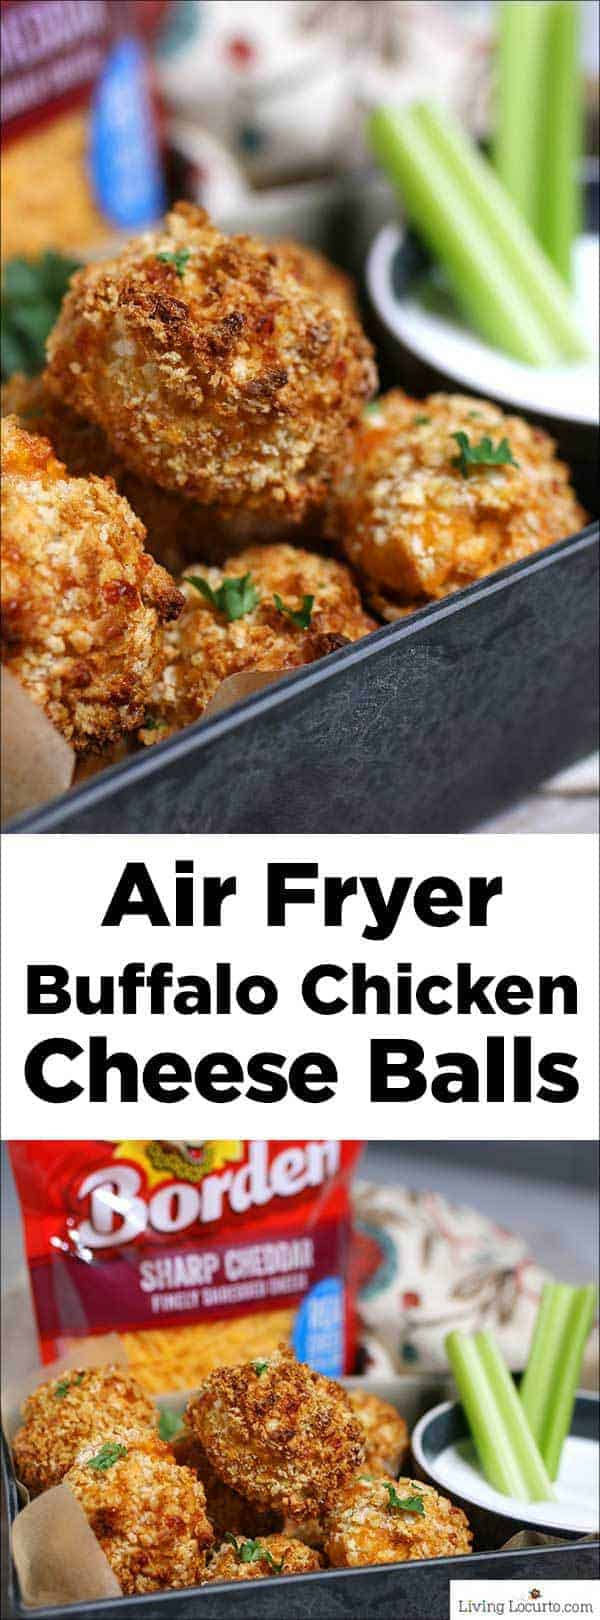 Air Fryer Buffalo Chicken Cheese Balls are a simple game day recipe made with Buffalo chicken, cheddar cheese and blue cheese dipping sauce. Easy party appetizer or snack. #recipe #airfryer